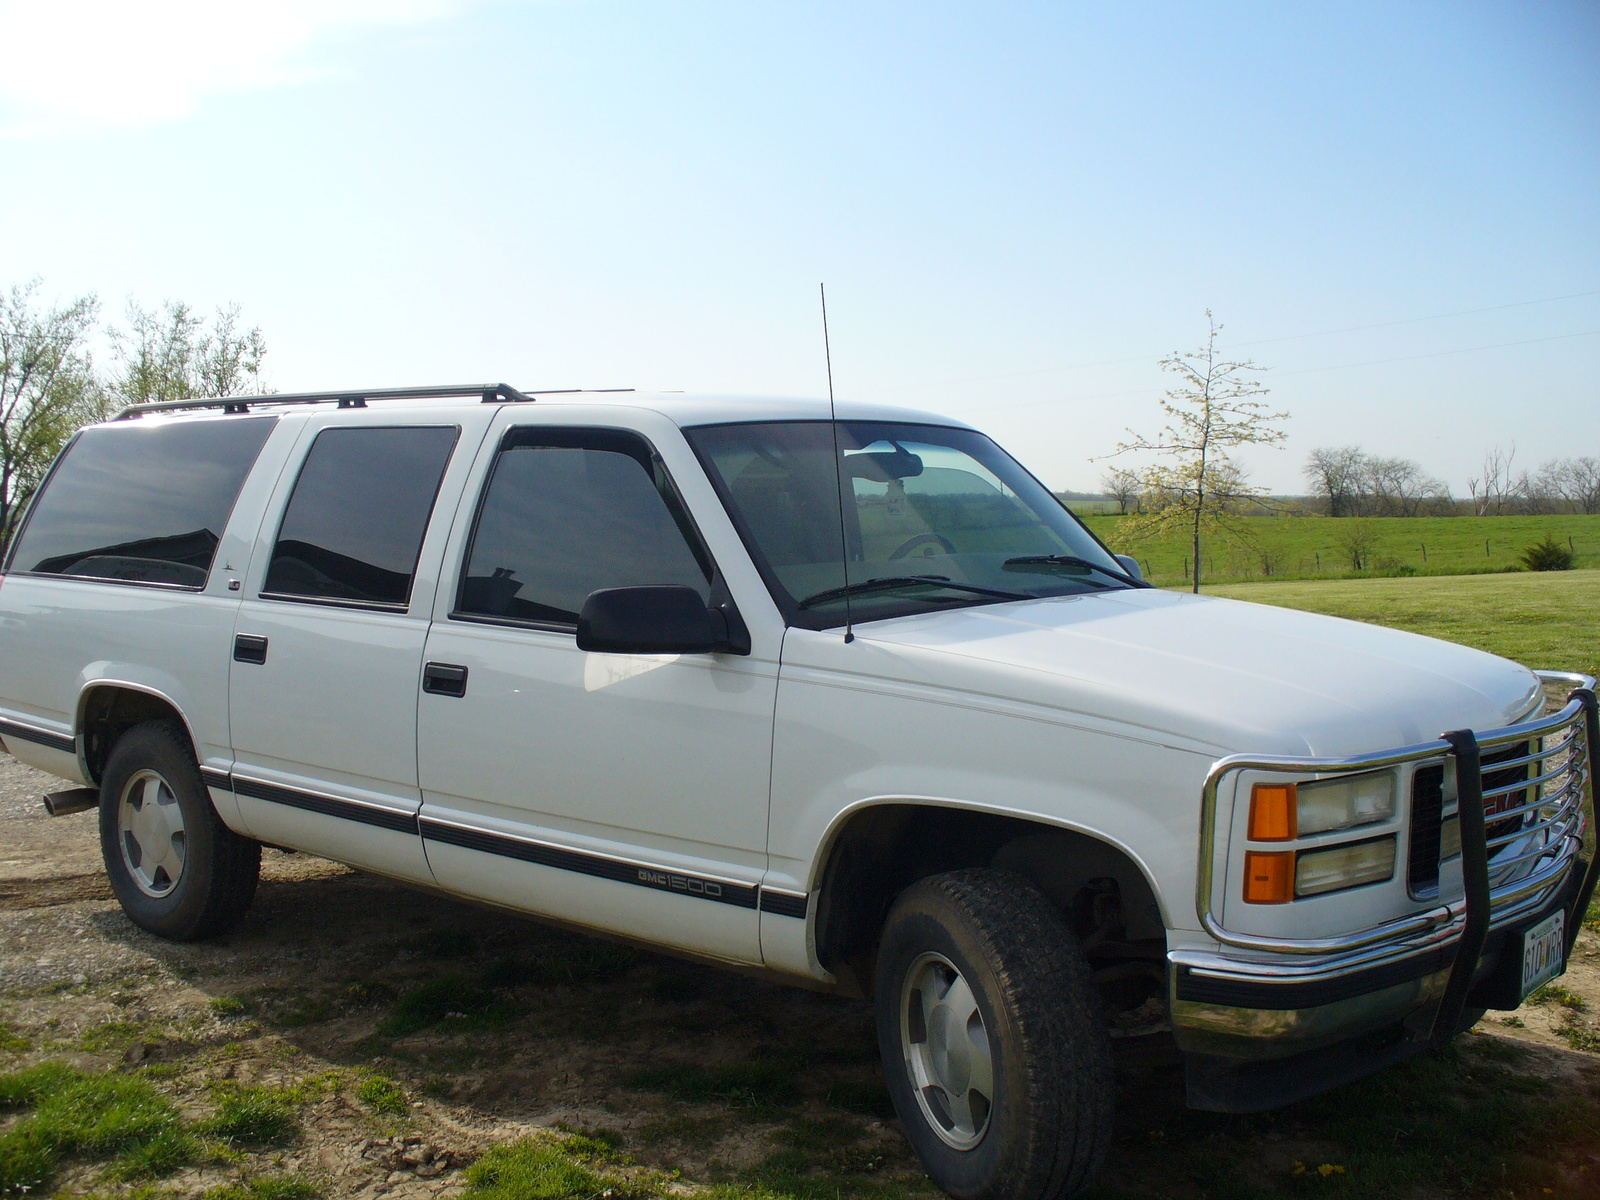 1999 GMC Suburban K1500 SLE 4WD, 1999 GMC Suburban 4 Dr K1500 SLE 4WD SUV picture, exterior